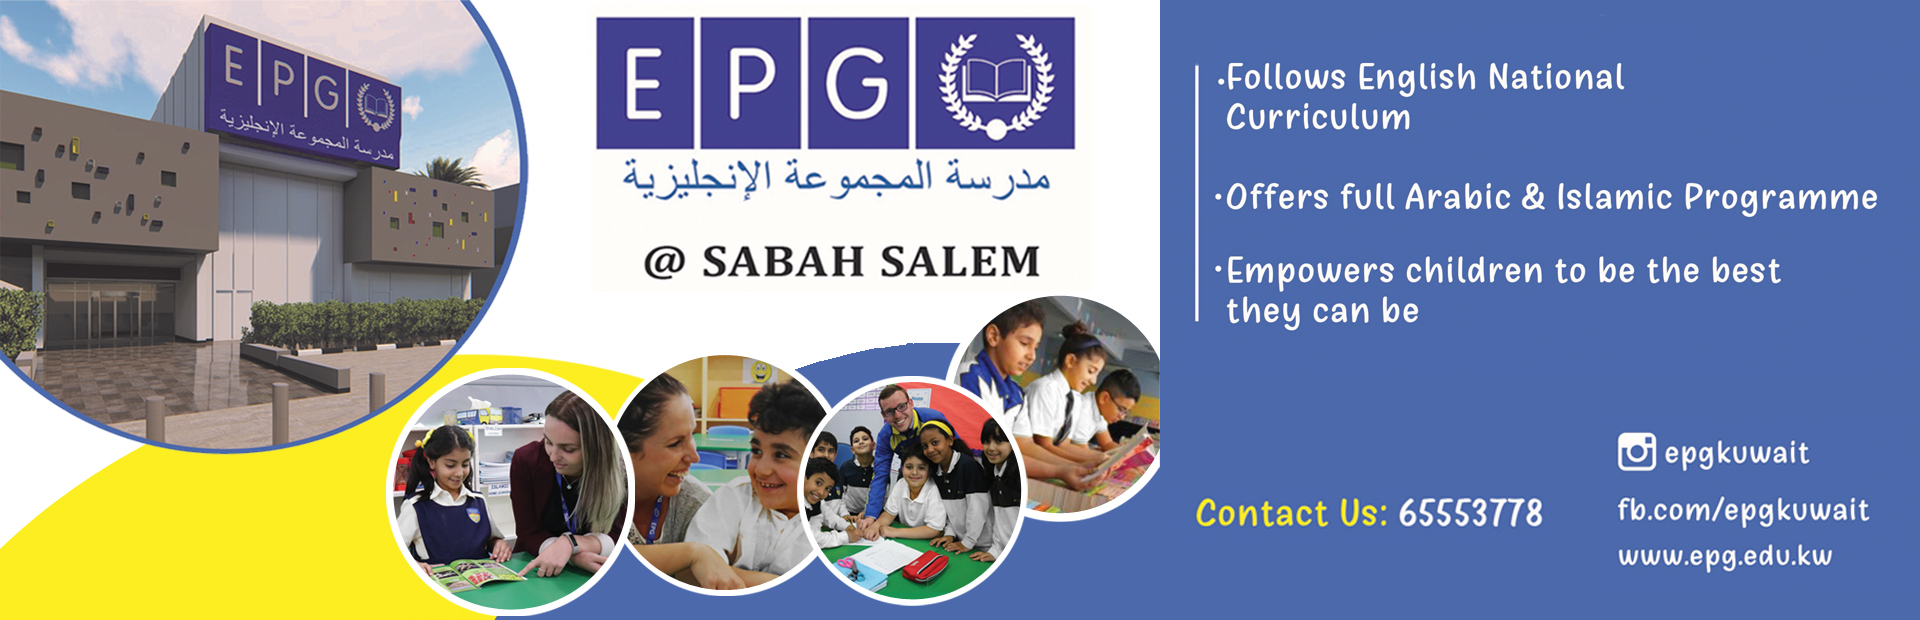 EPG, Kuwait - British Early Years Education and Primary Schools